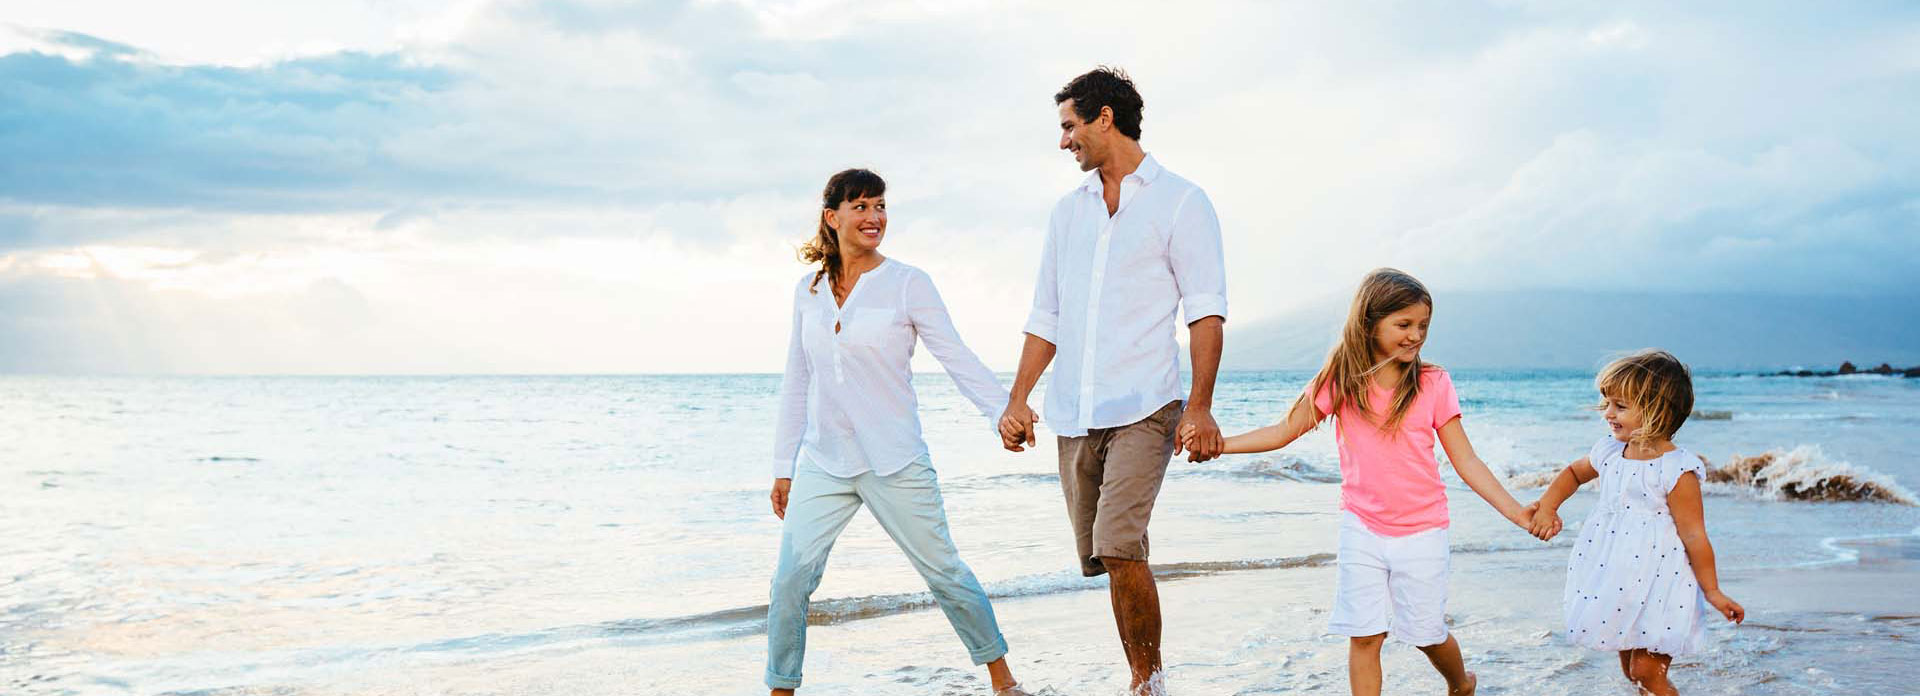 A happy family walking on a beach